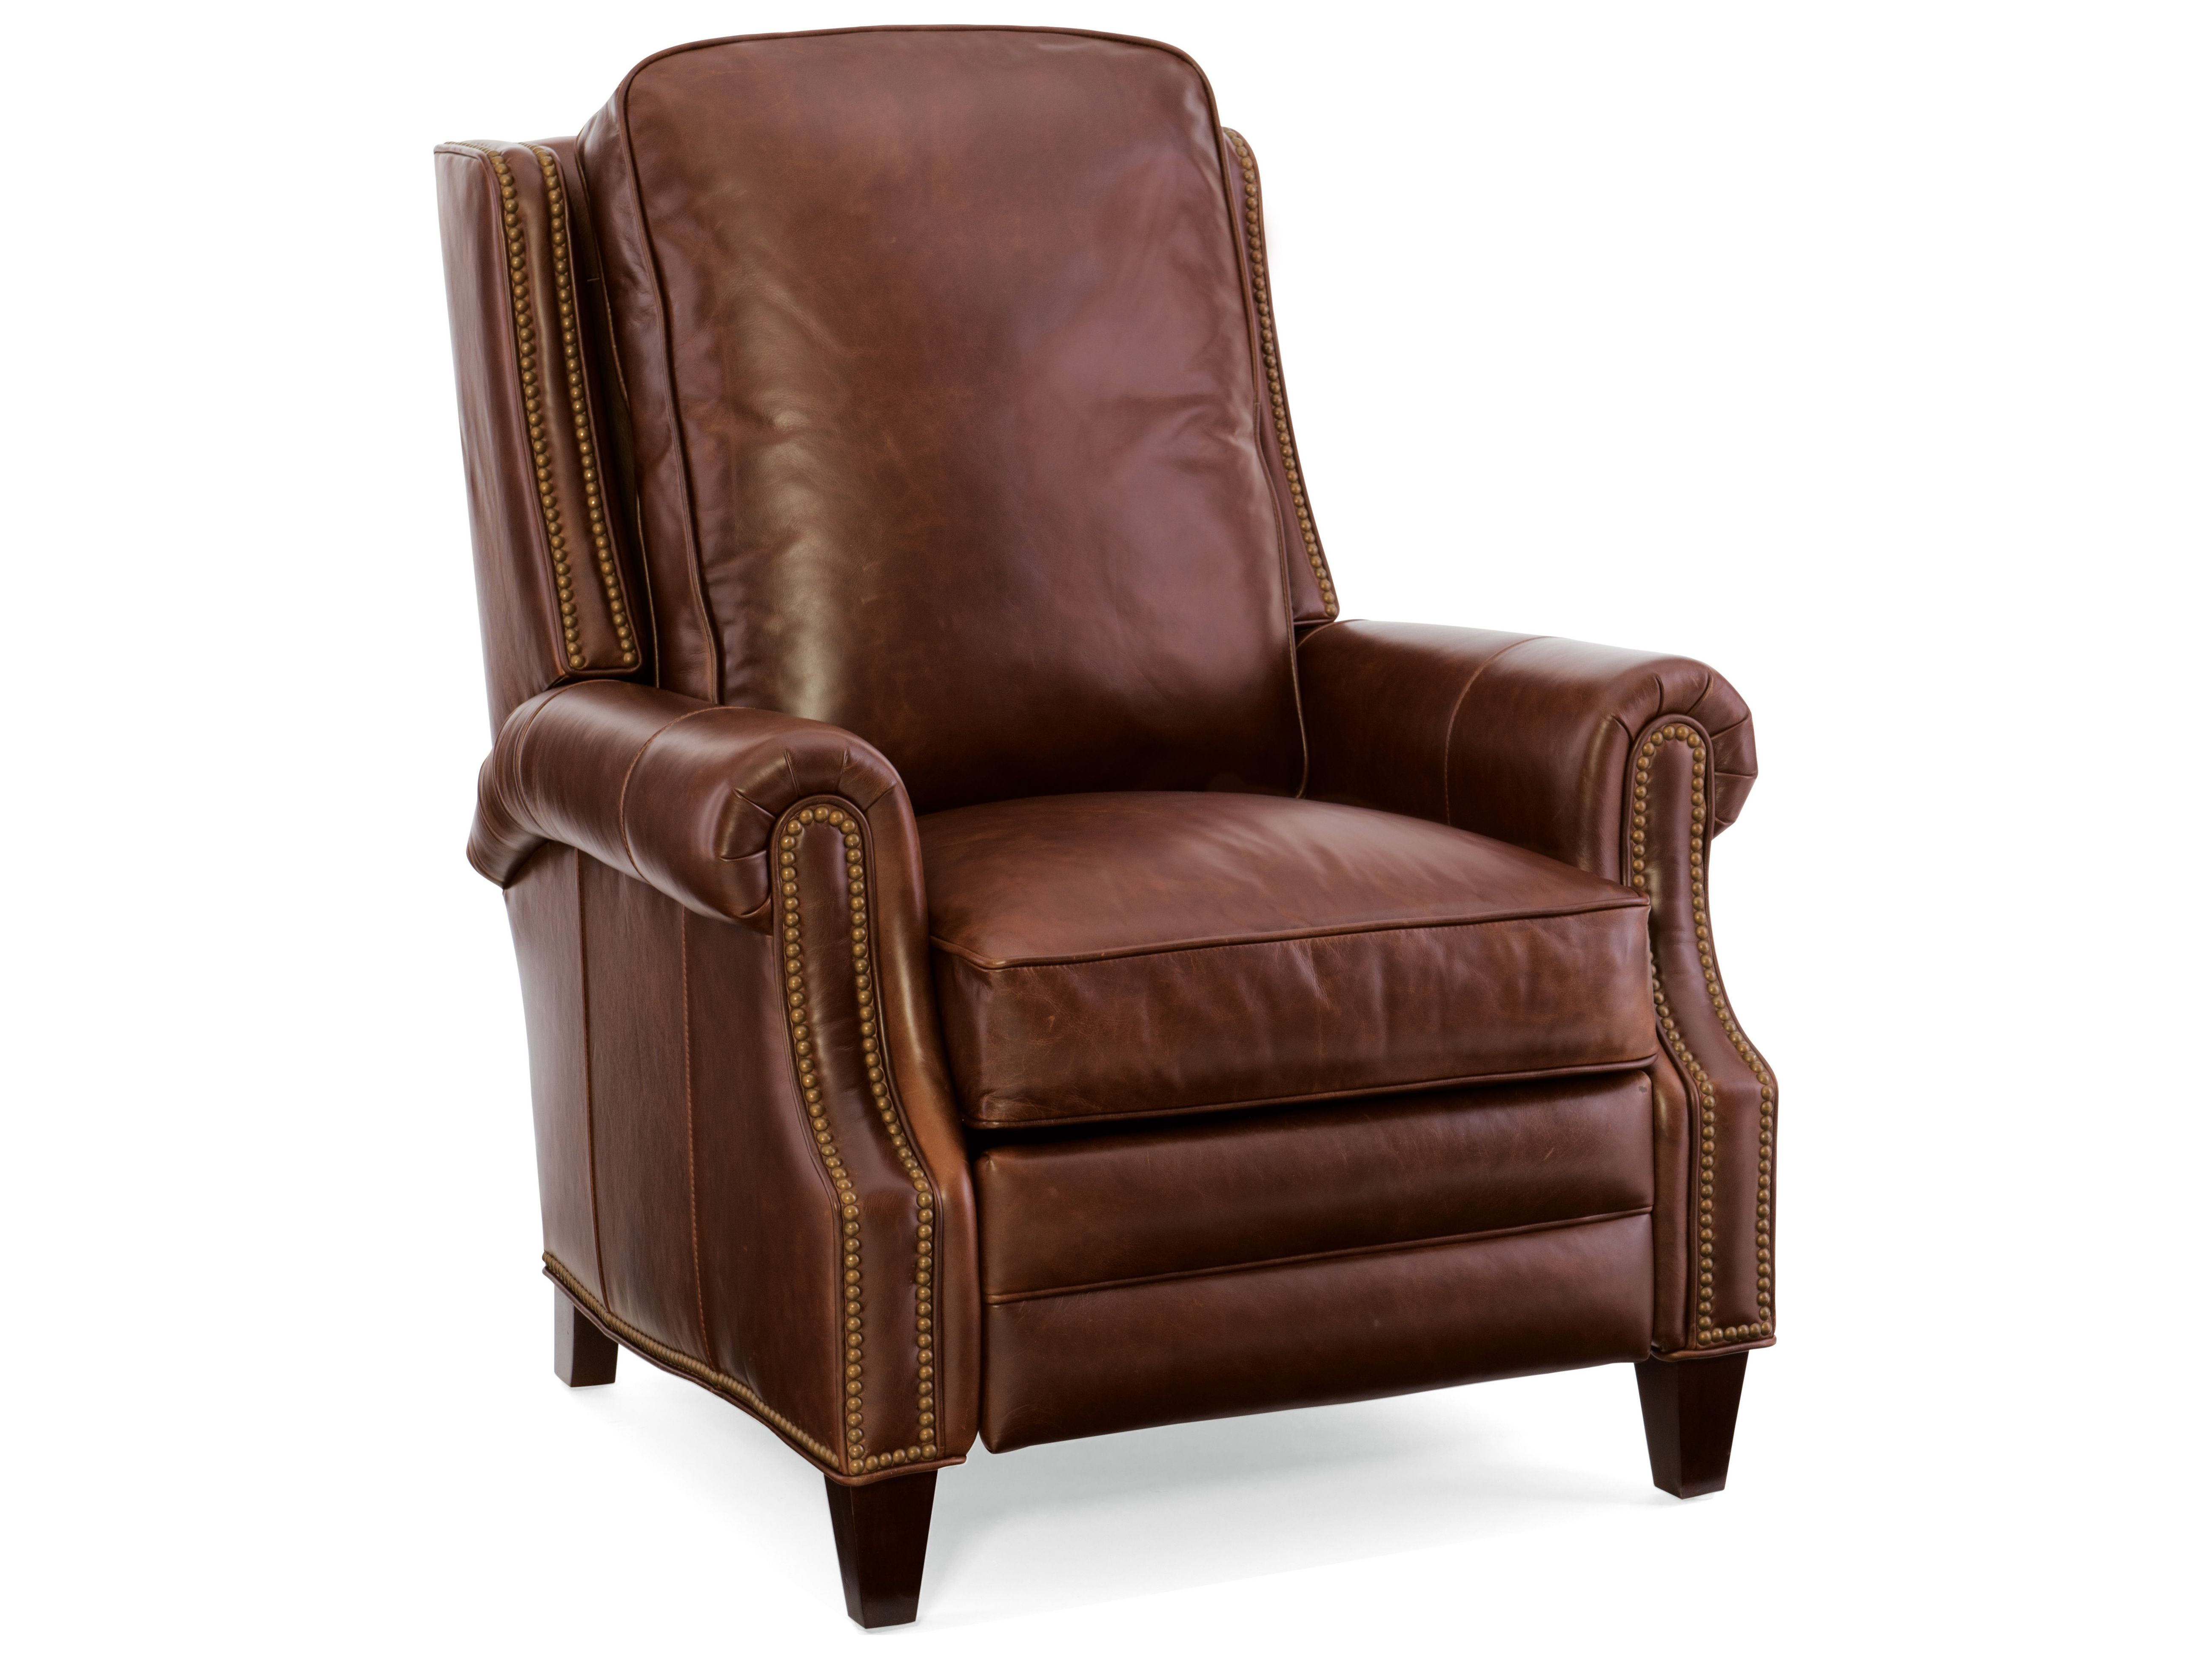 Bradington young aaron recliner chair married cover